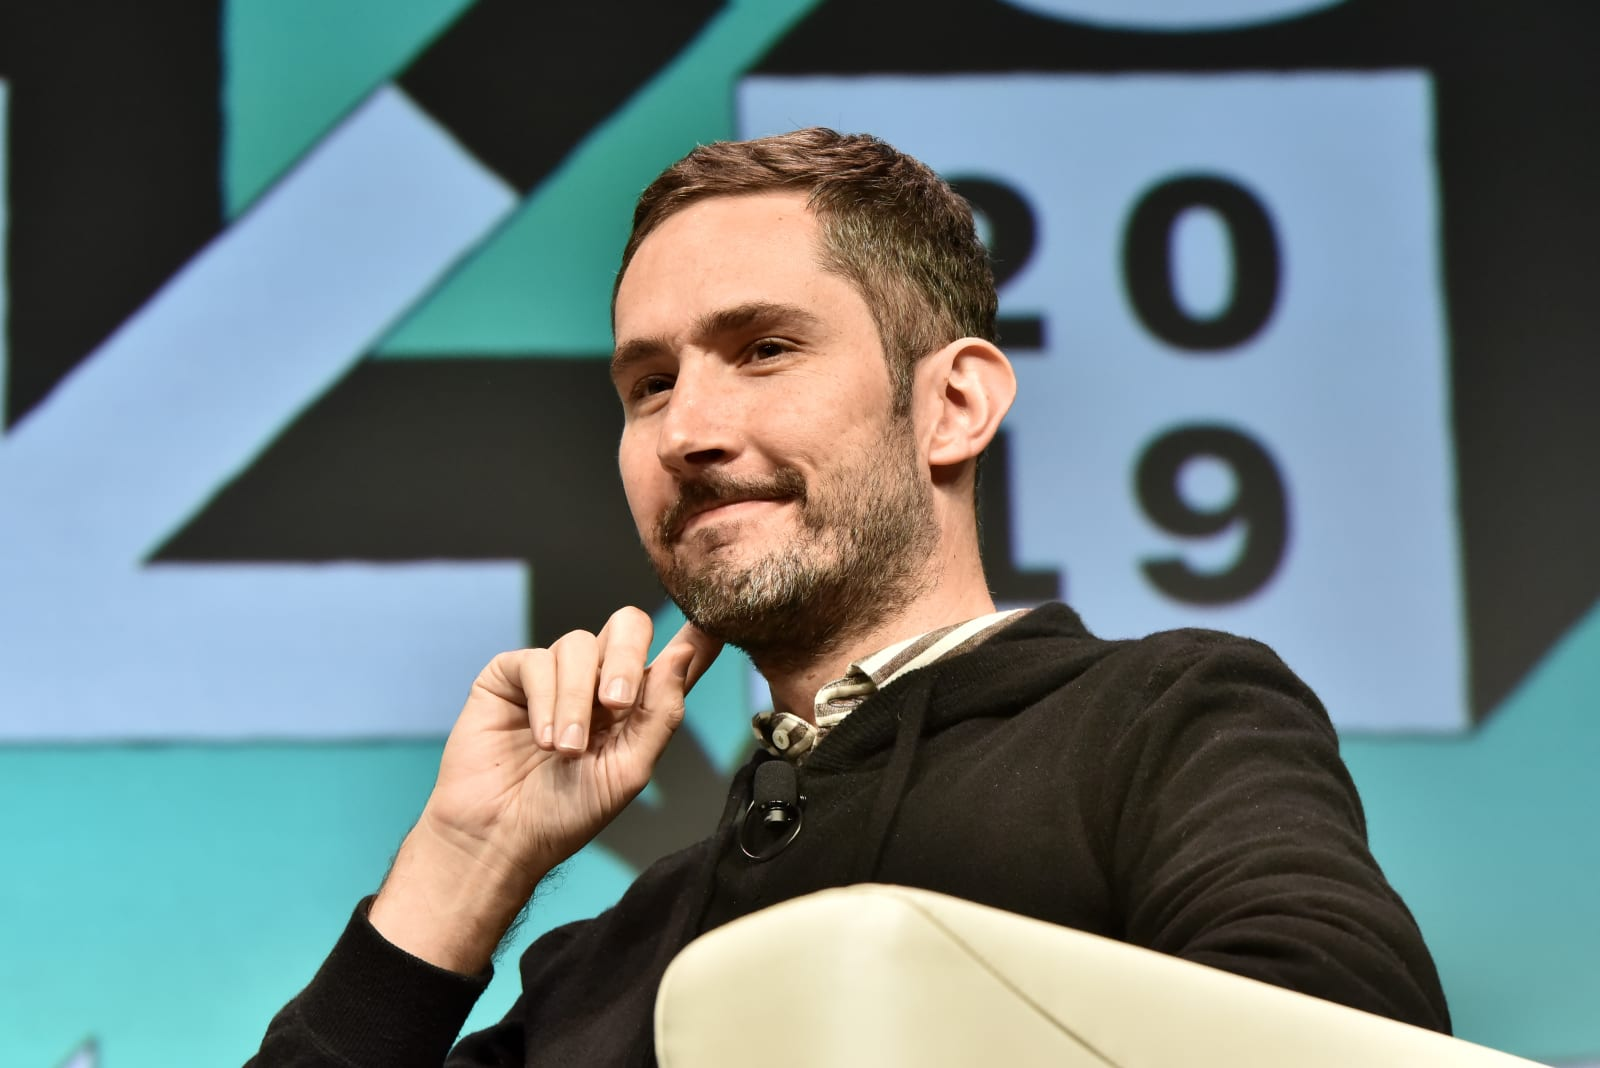 Interactive Keynote: Instagram Founders Kevin Systrom & Mike Krieger with Josh Constine - 2019 SXSW Conference and Festivals